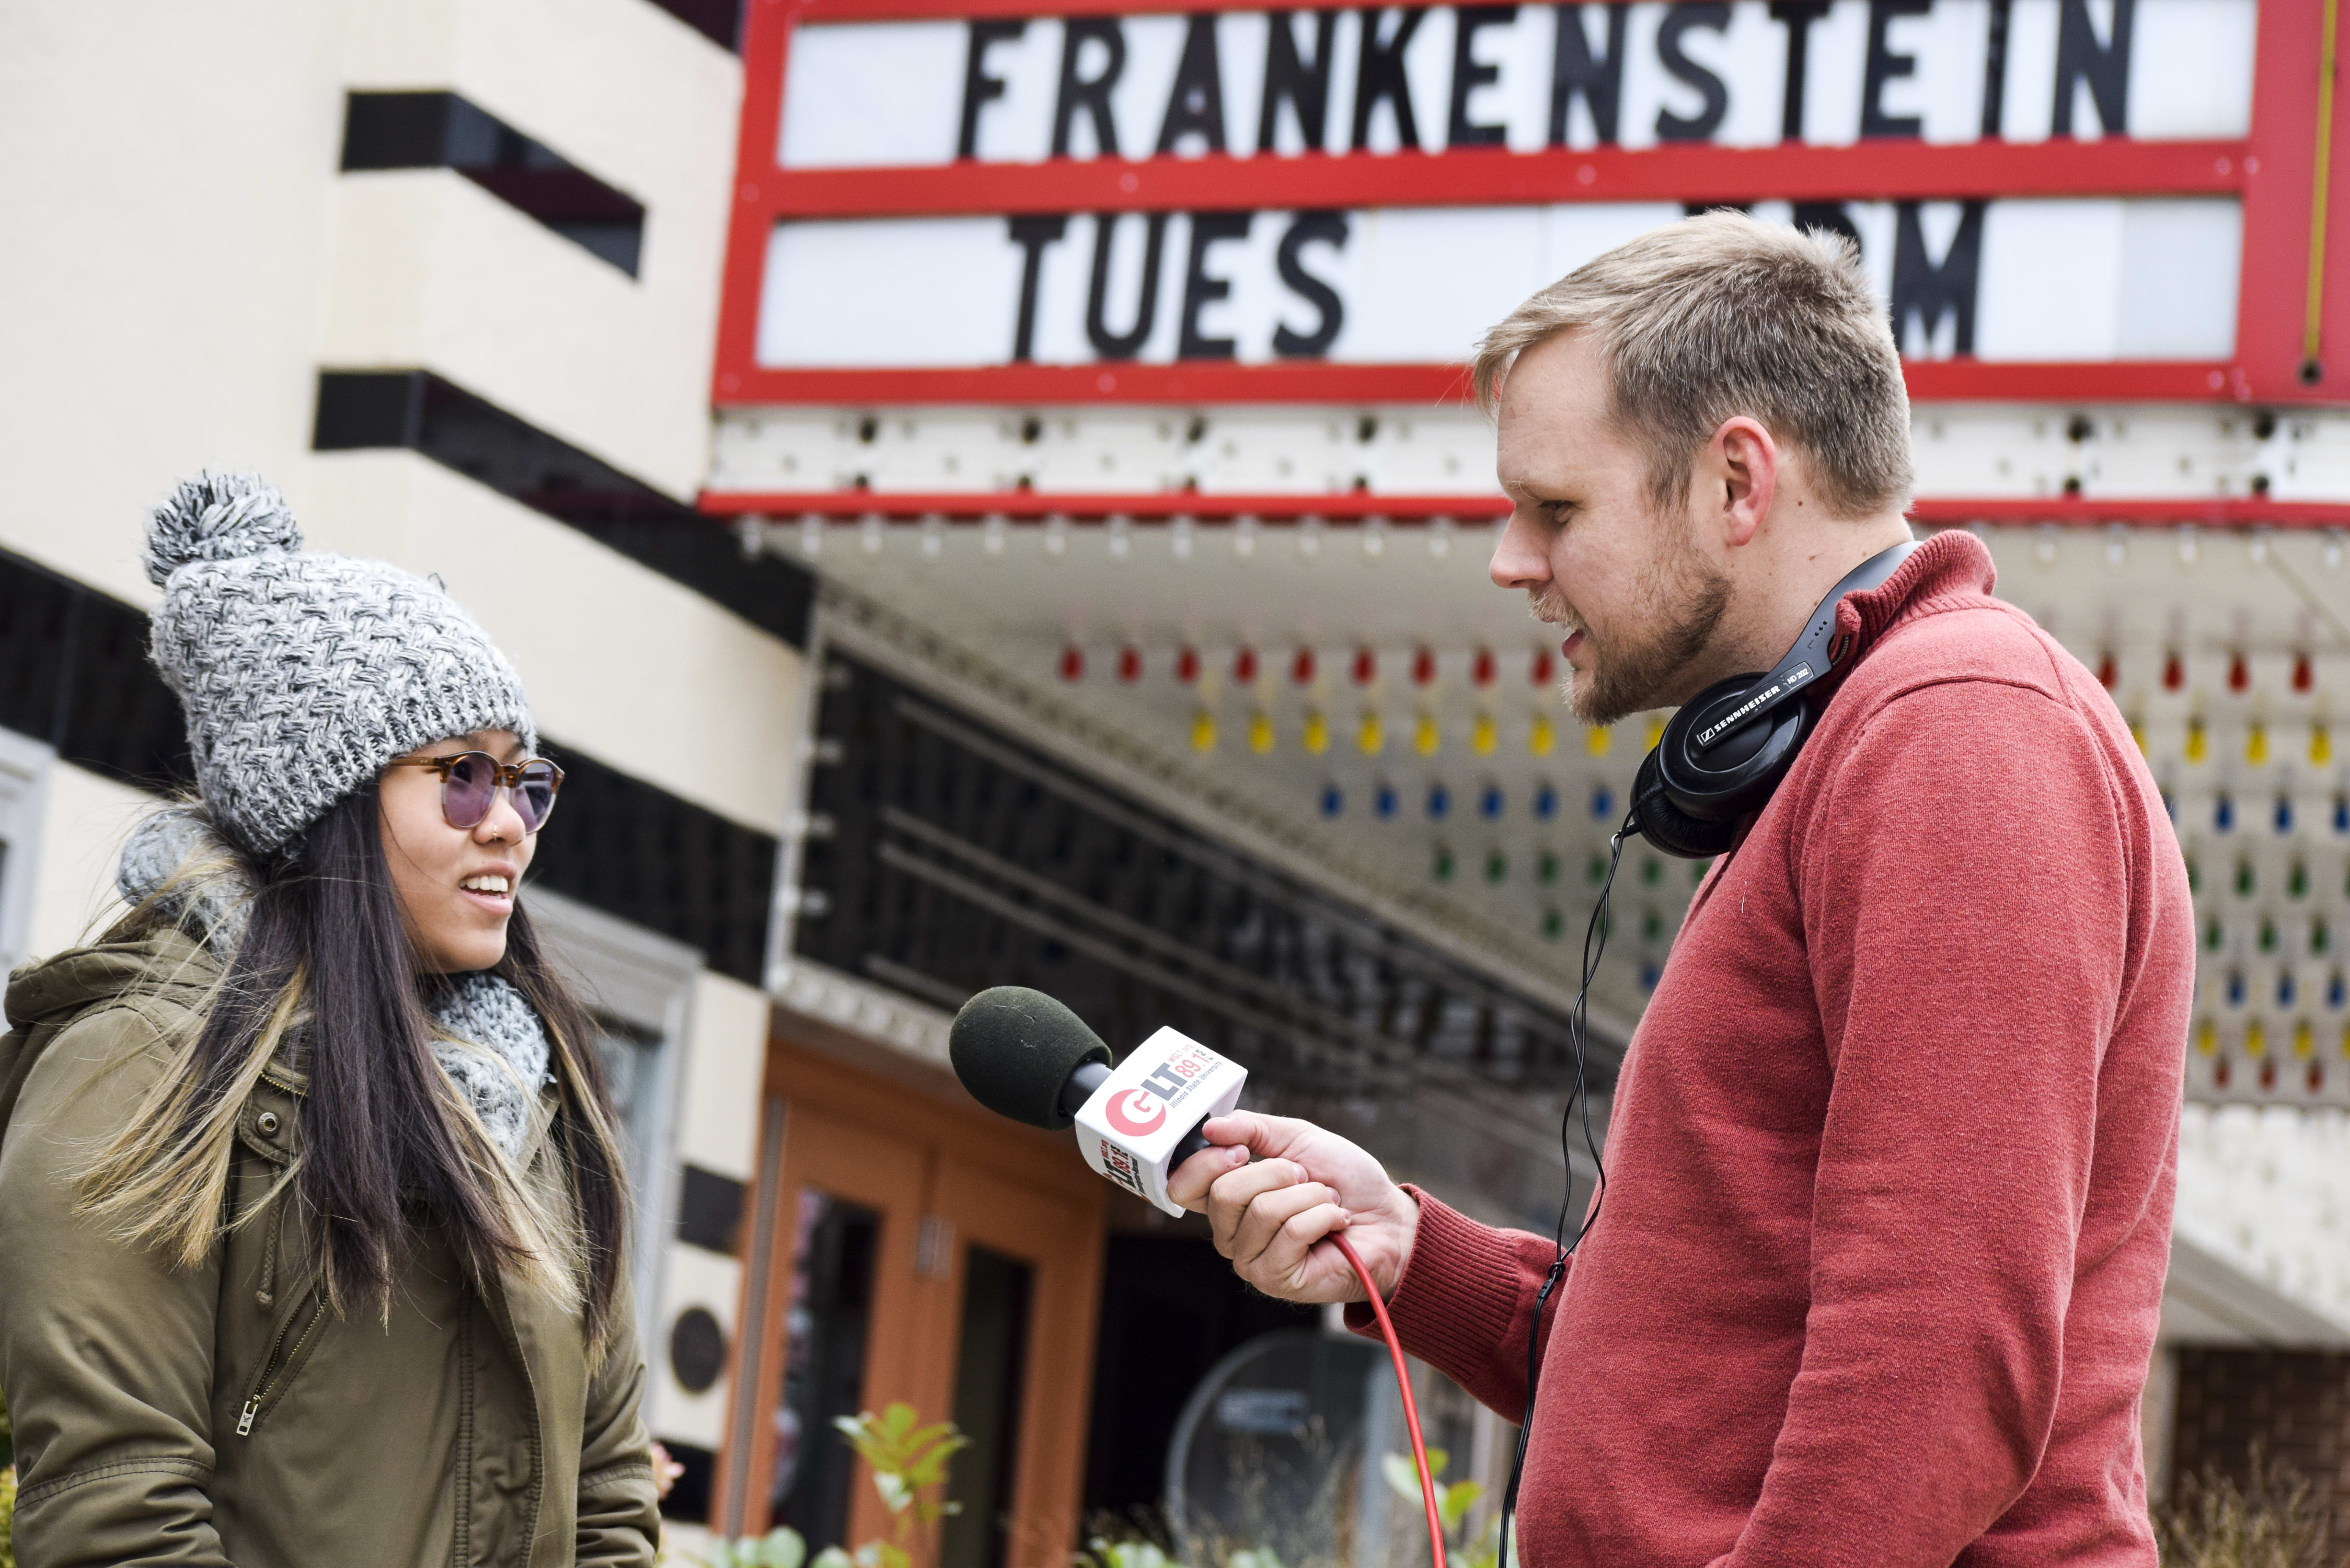 WGLT's Ryan Denham interviewing someone outside the Normal Theatre.